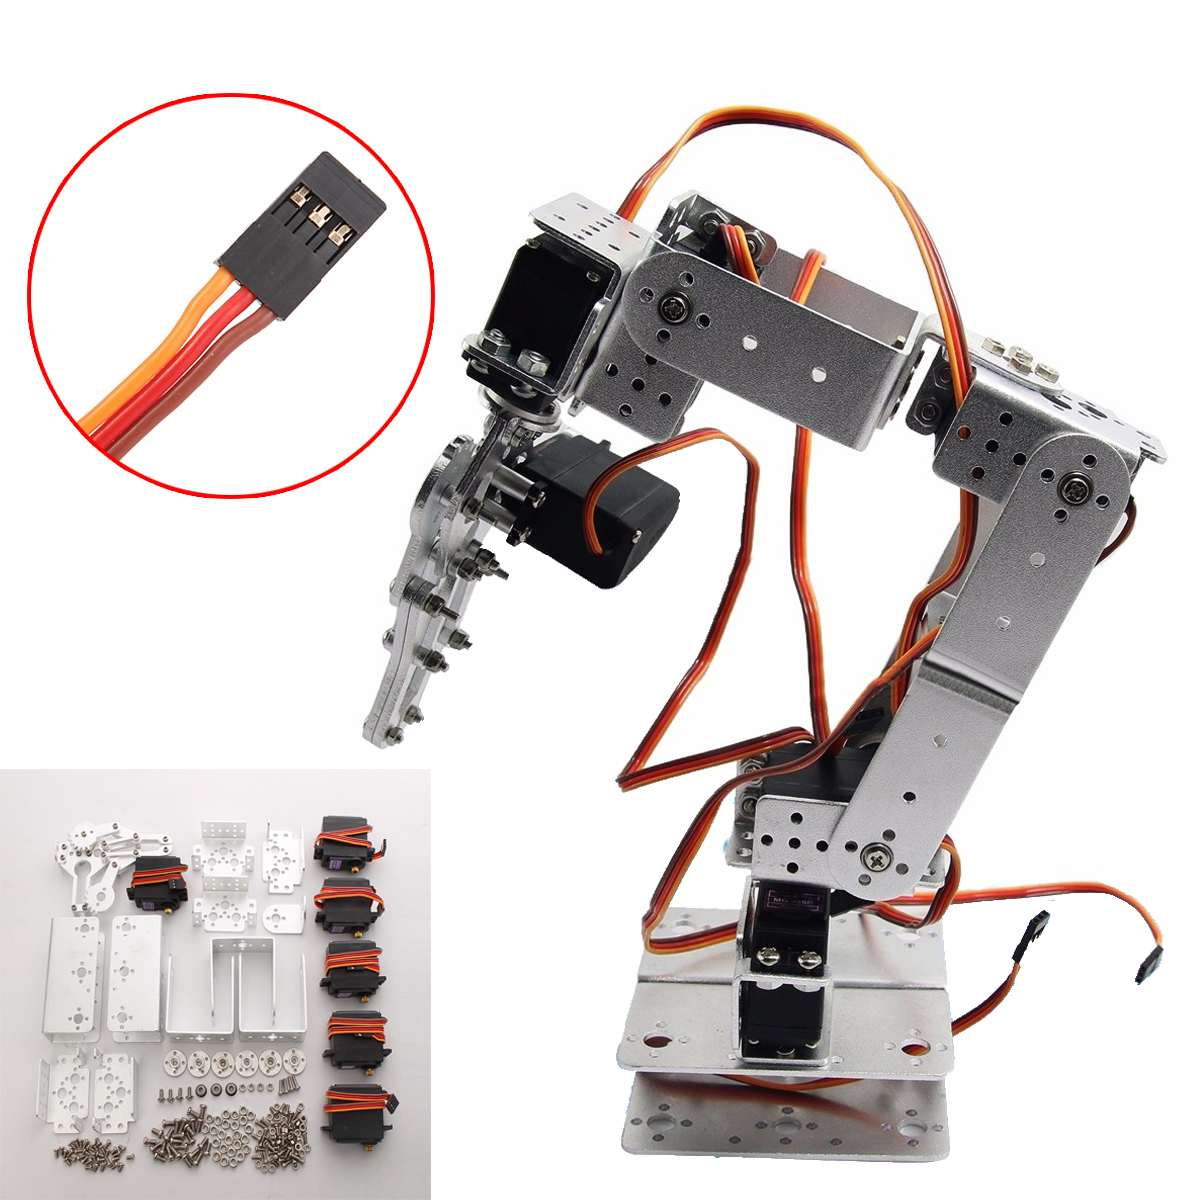 Aluminium Alloy 6-DOF Robotic Arm Mechanical for Clamping Objects